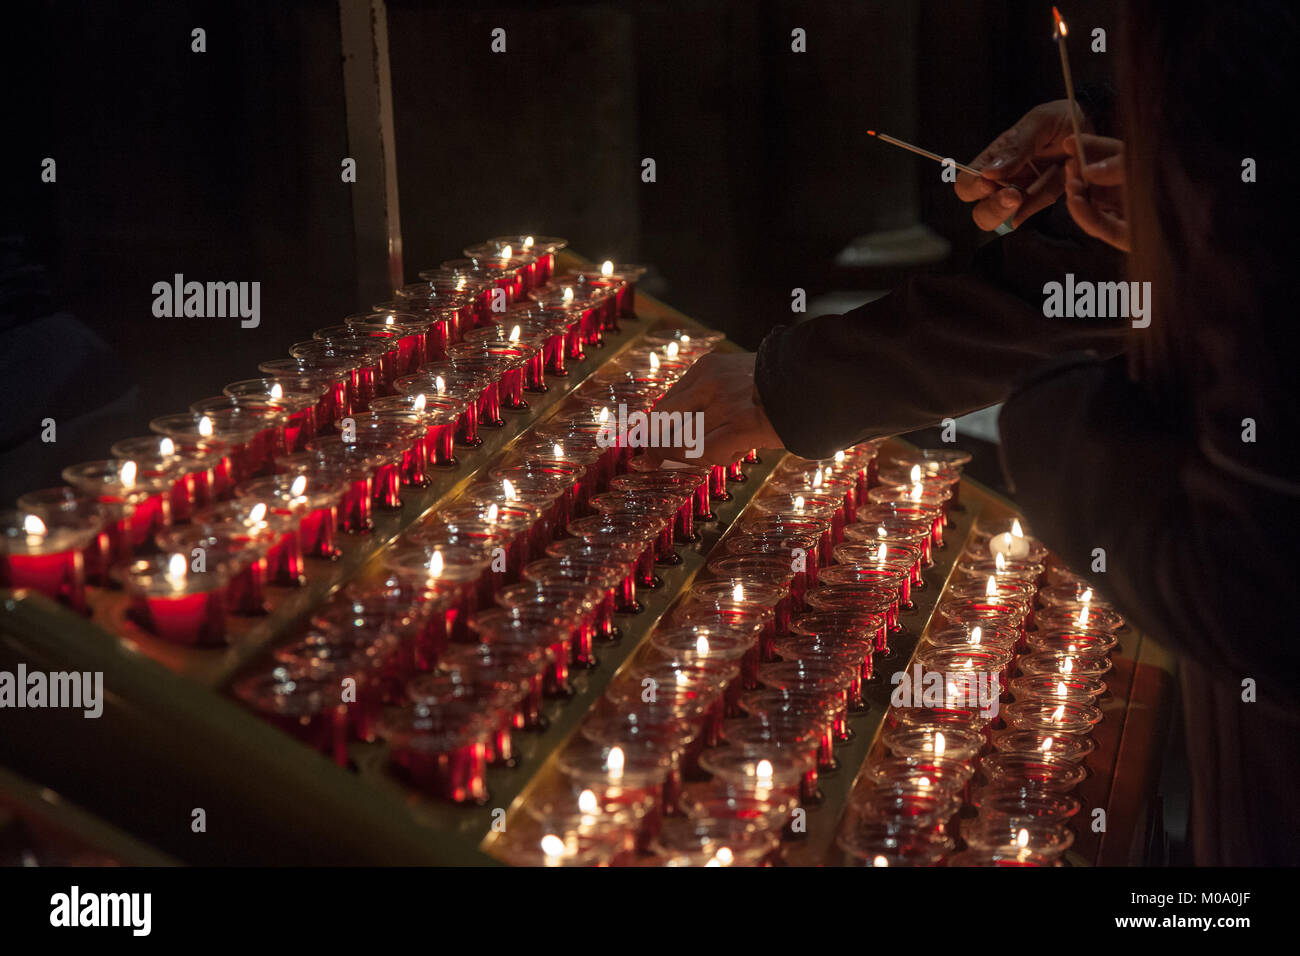 People lighting candles in the Notre Dame cathedral in Paris, France. Burning a candle is a usual practice in Catholicism - Stock Image